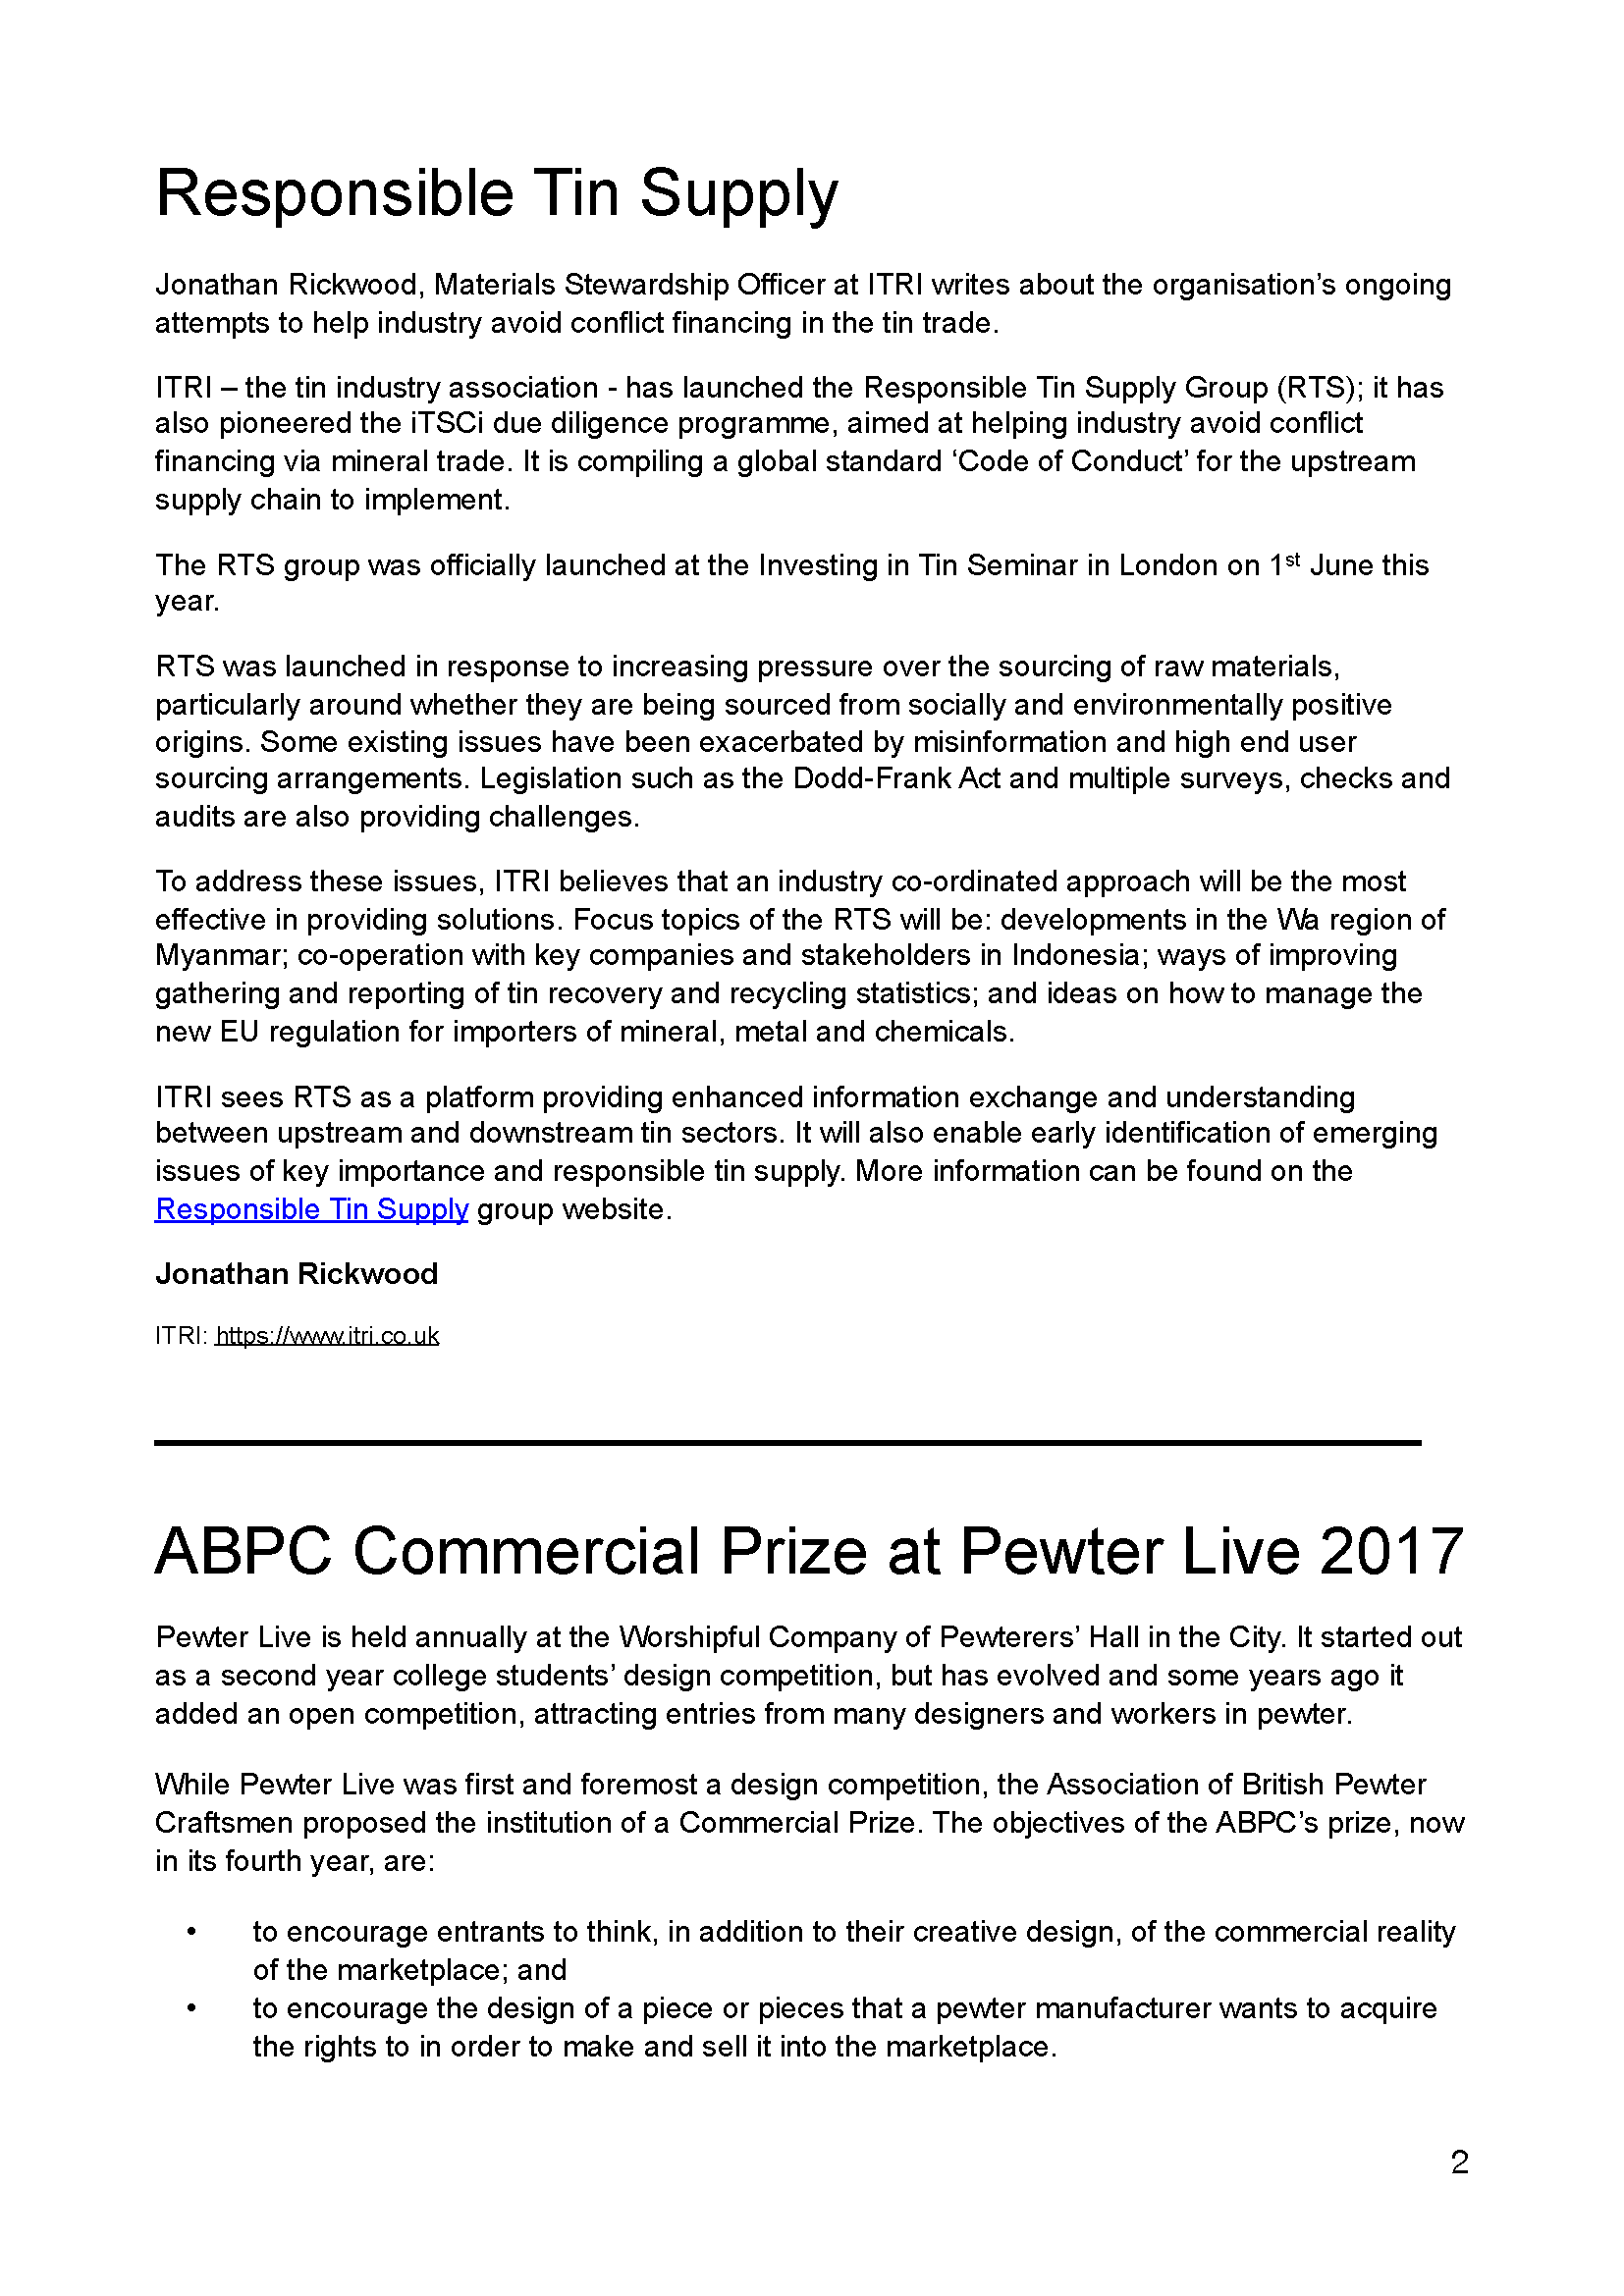 ABPC Newsletter11.3_Page_2